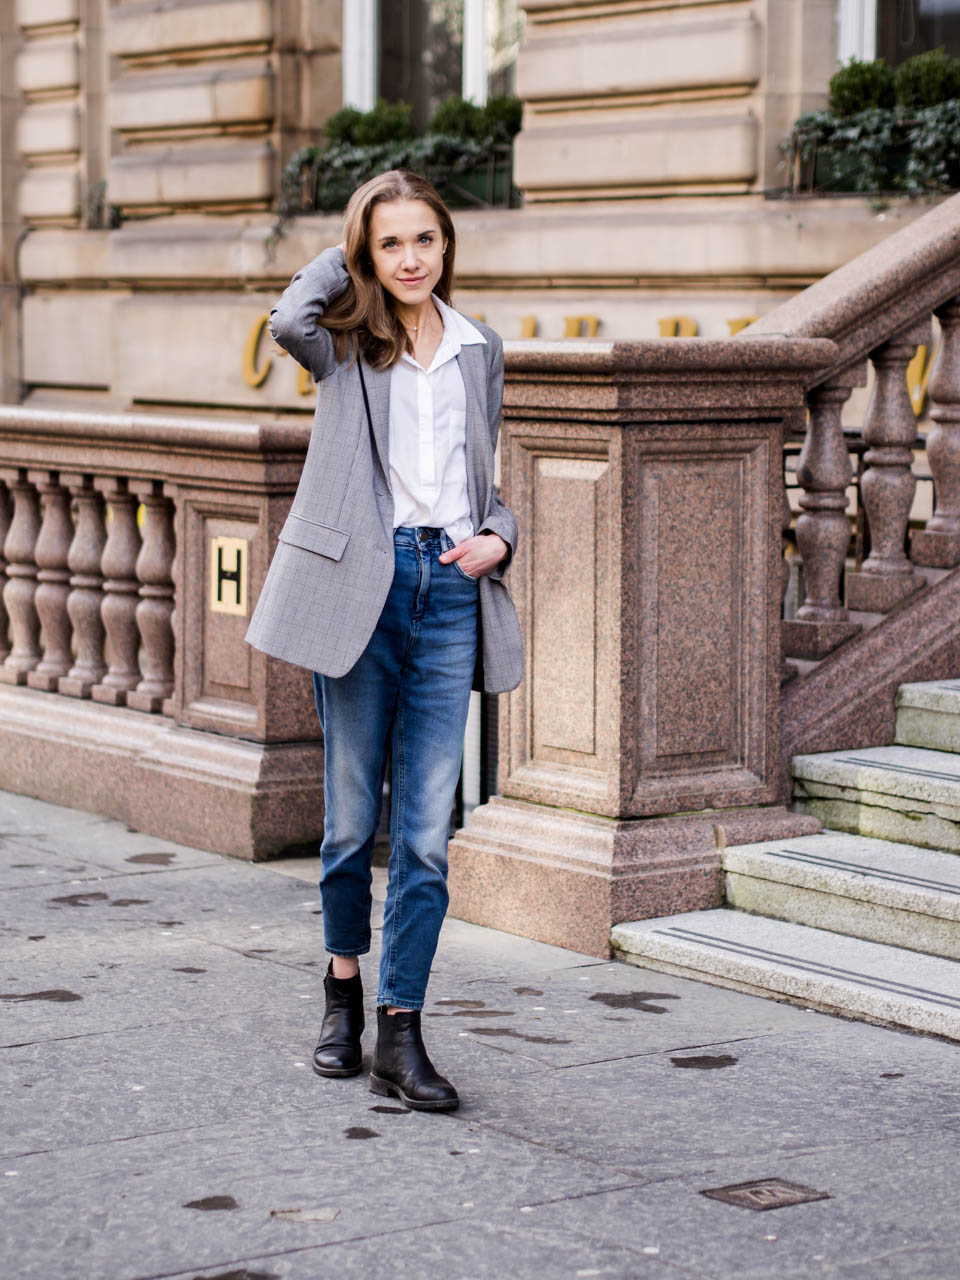 monday-unifrom-business-casual-fashion-blogger-outfit-inspiration